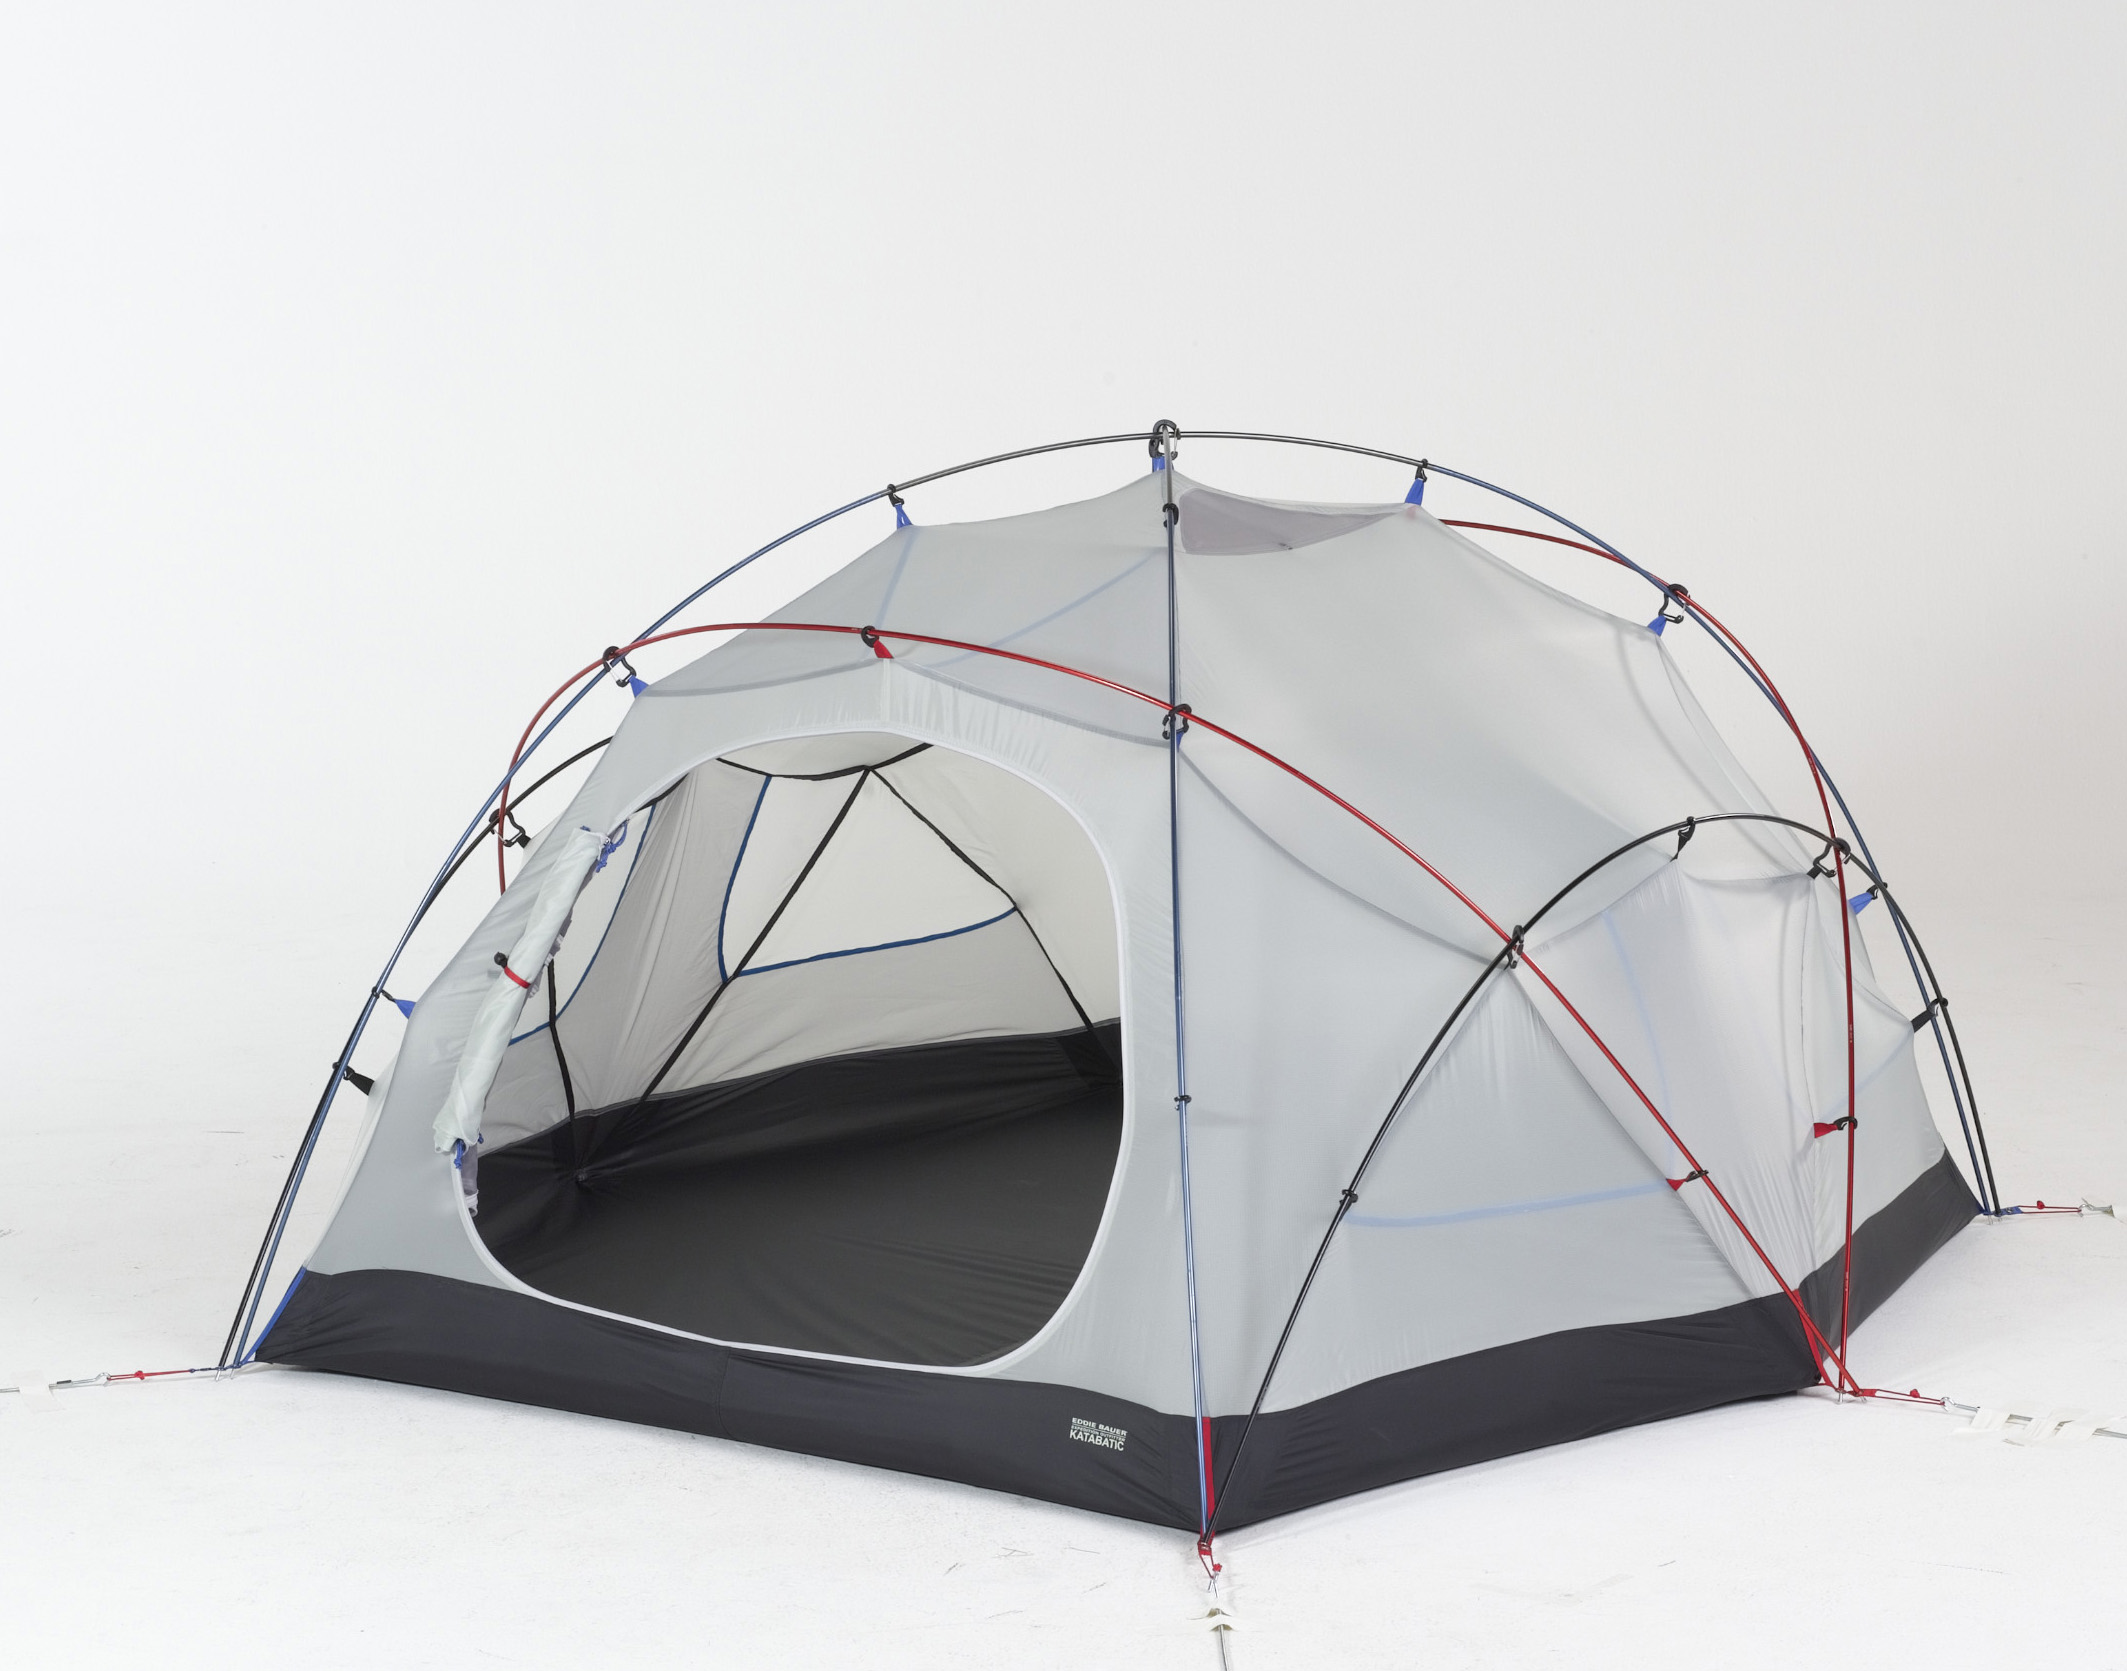 Katabatic Tent without rain fly & Eddie Bauer Releases Full Gear Collection with Tents Sleeping ...